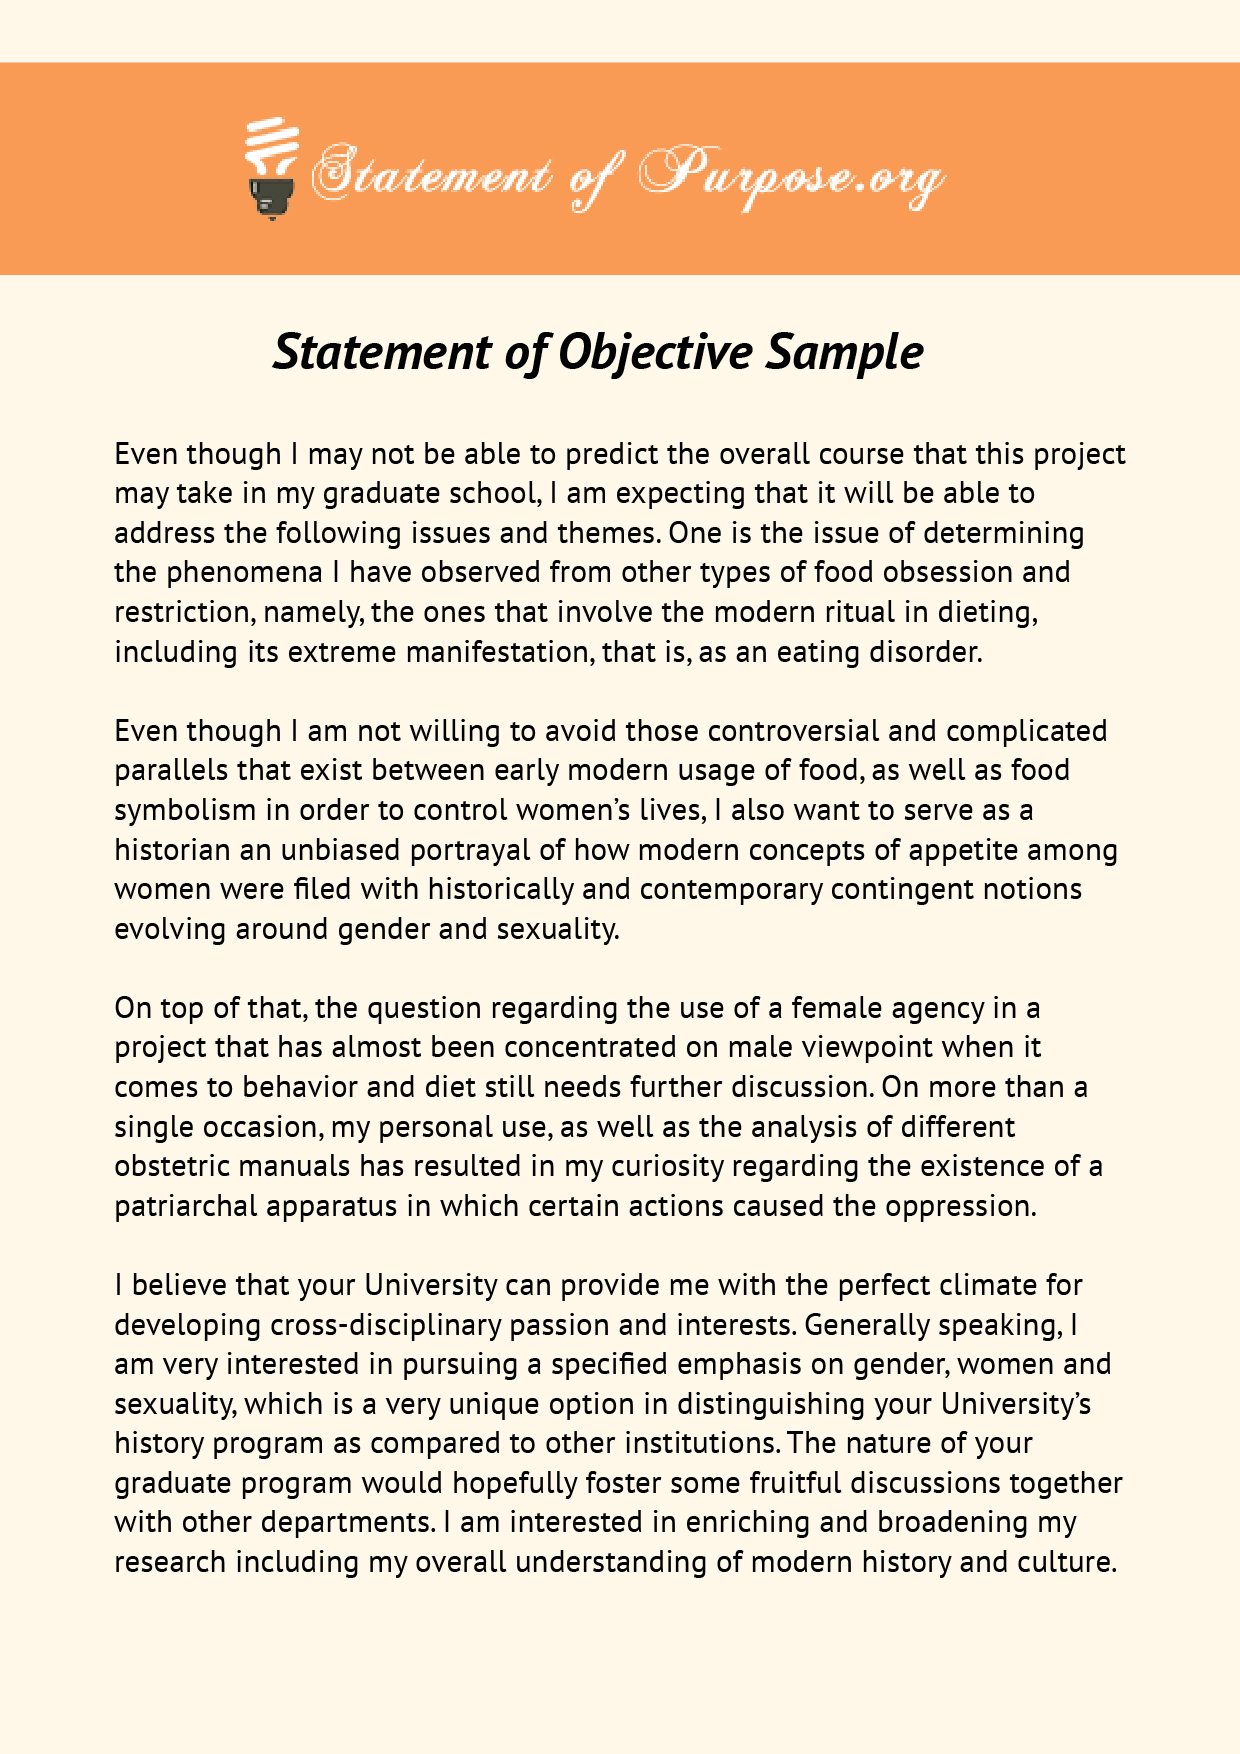 Writing An Impressive Academic Statement Of Objective With Us